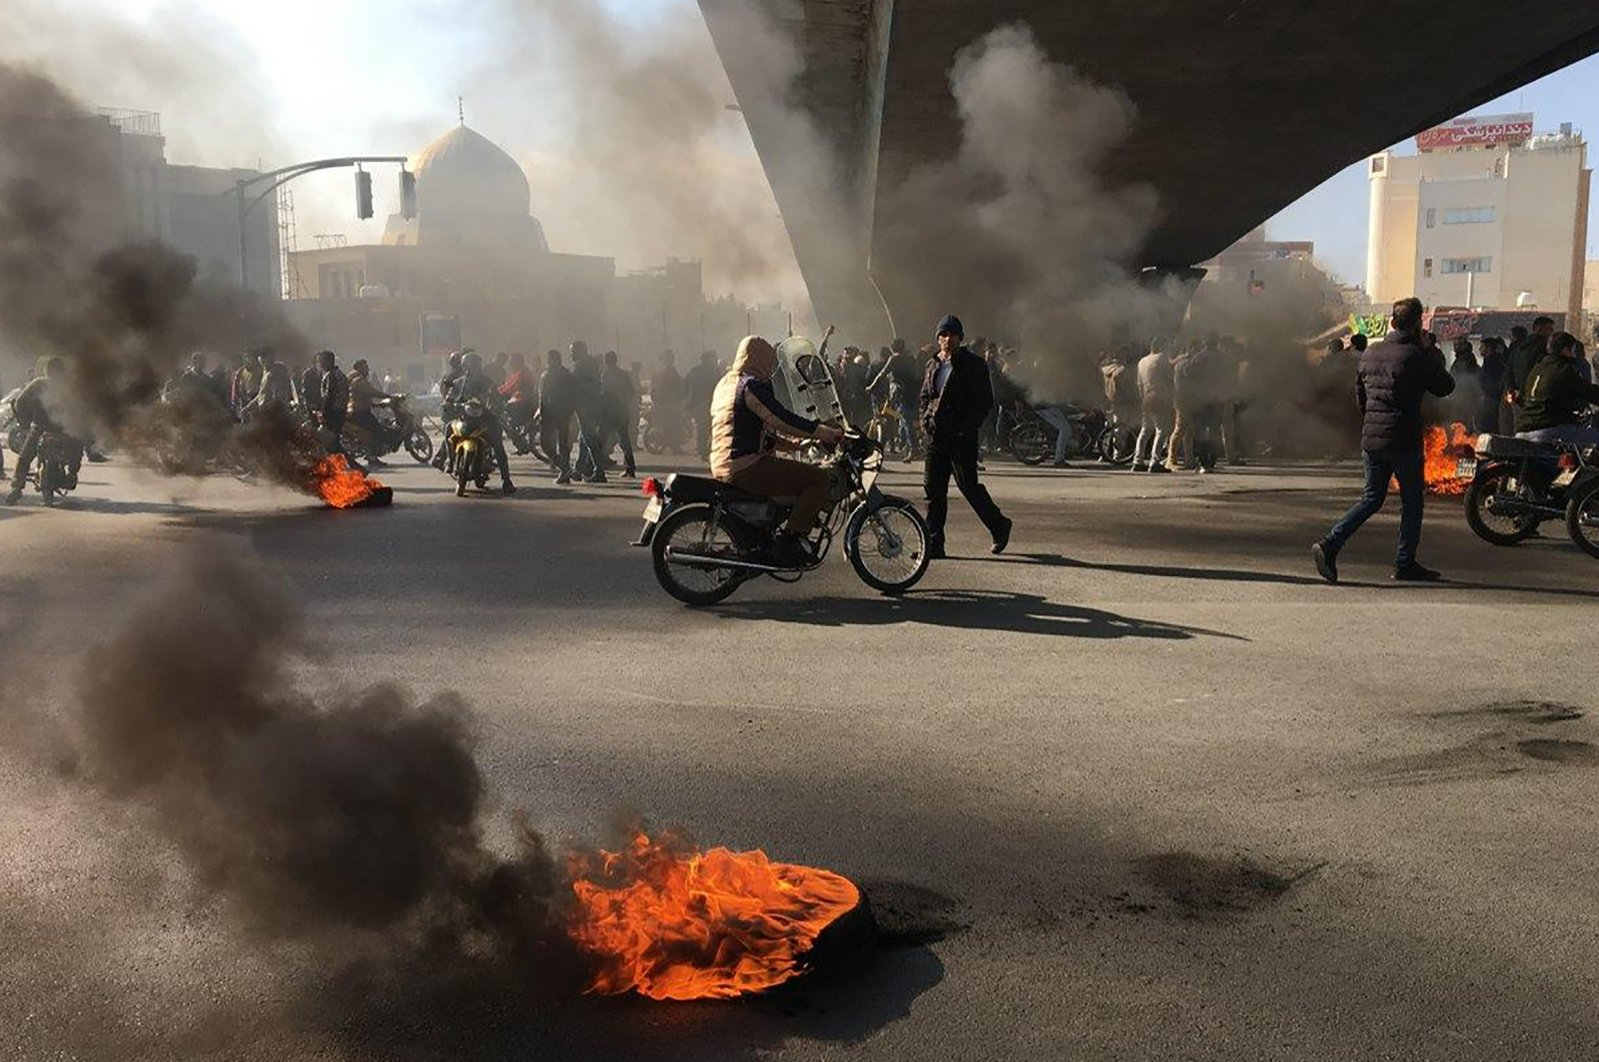 Iranian protesters rally amid burning tires during a demonstration against an increase in gasoline prices, in the central city of Isfahan, Iran, Nov. 16, 2019. (AFP Photo)